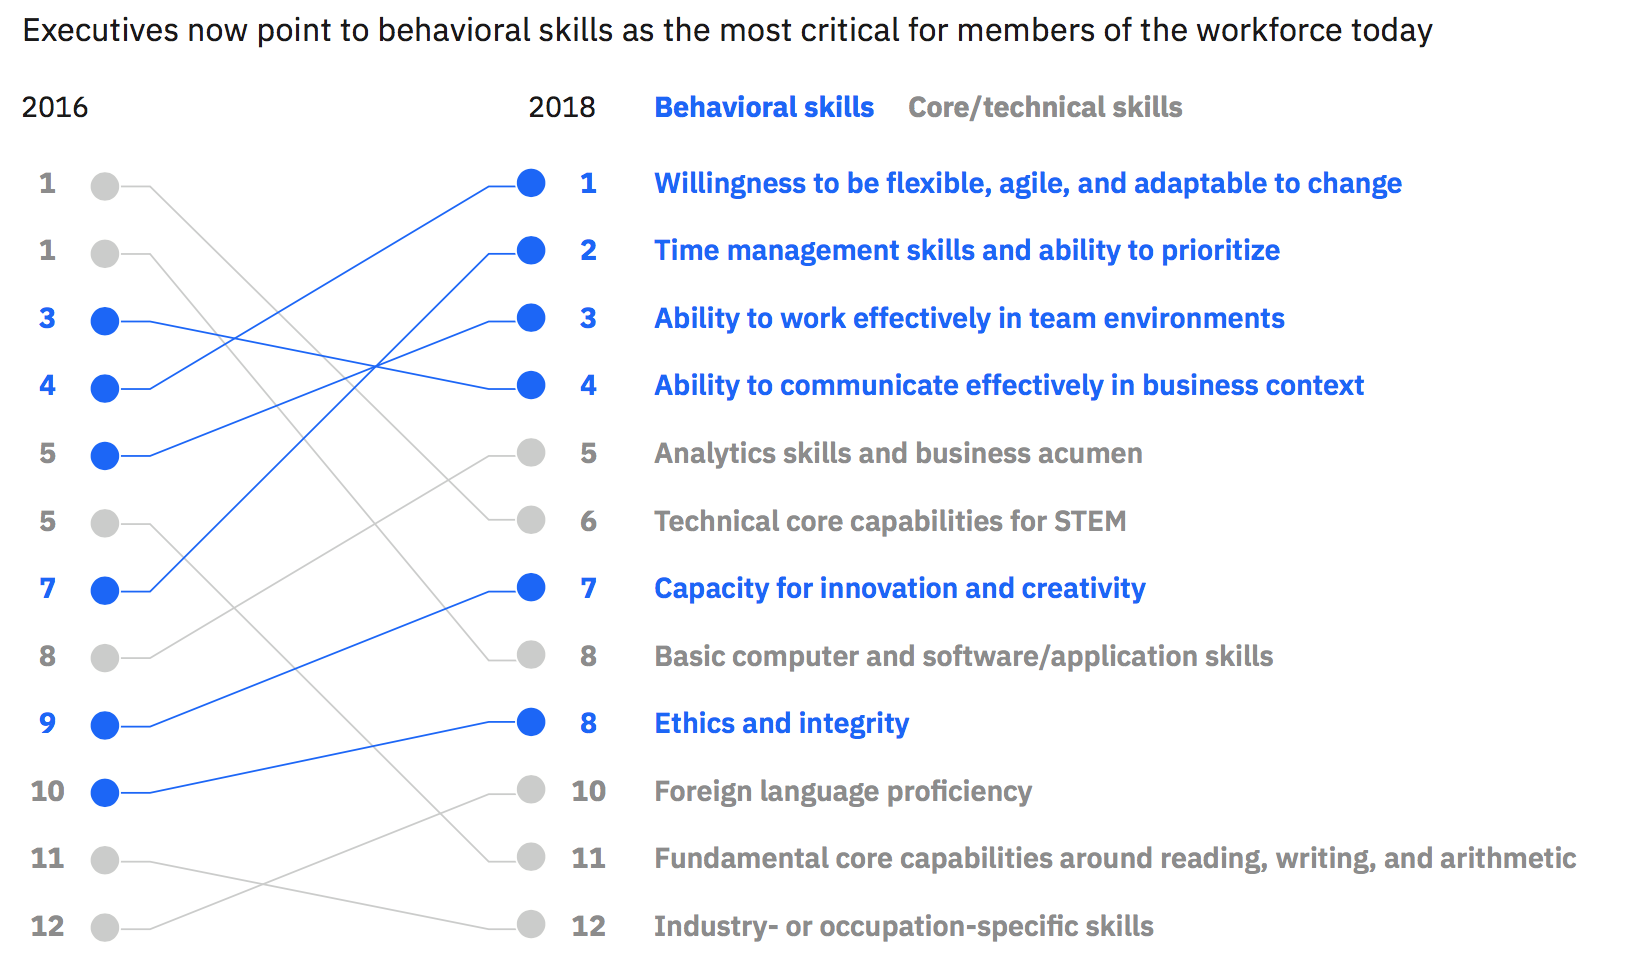 FIG 4:    Executives now point to behavioural skills as the most critical for members of the workforce today (Source: IBM Institute for Business Value Global Skills Survey; 2018 IBM Institute for Business Value Global Country Survey)